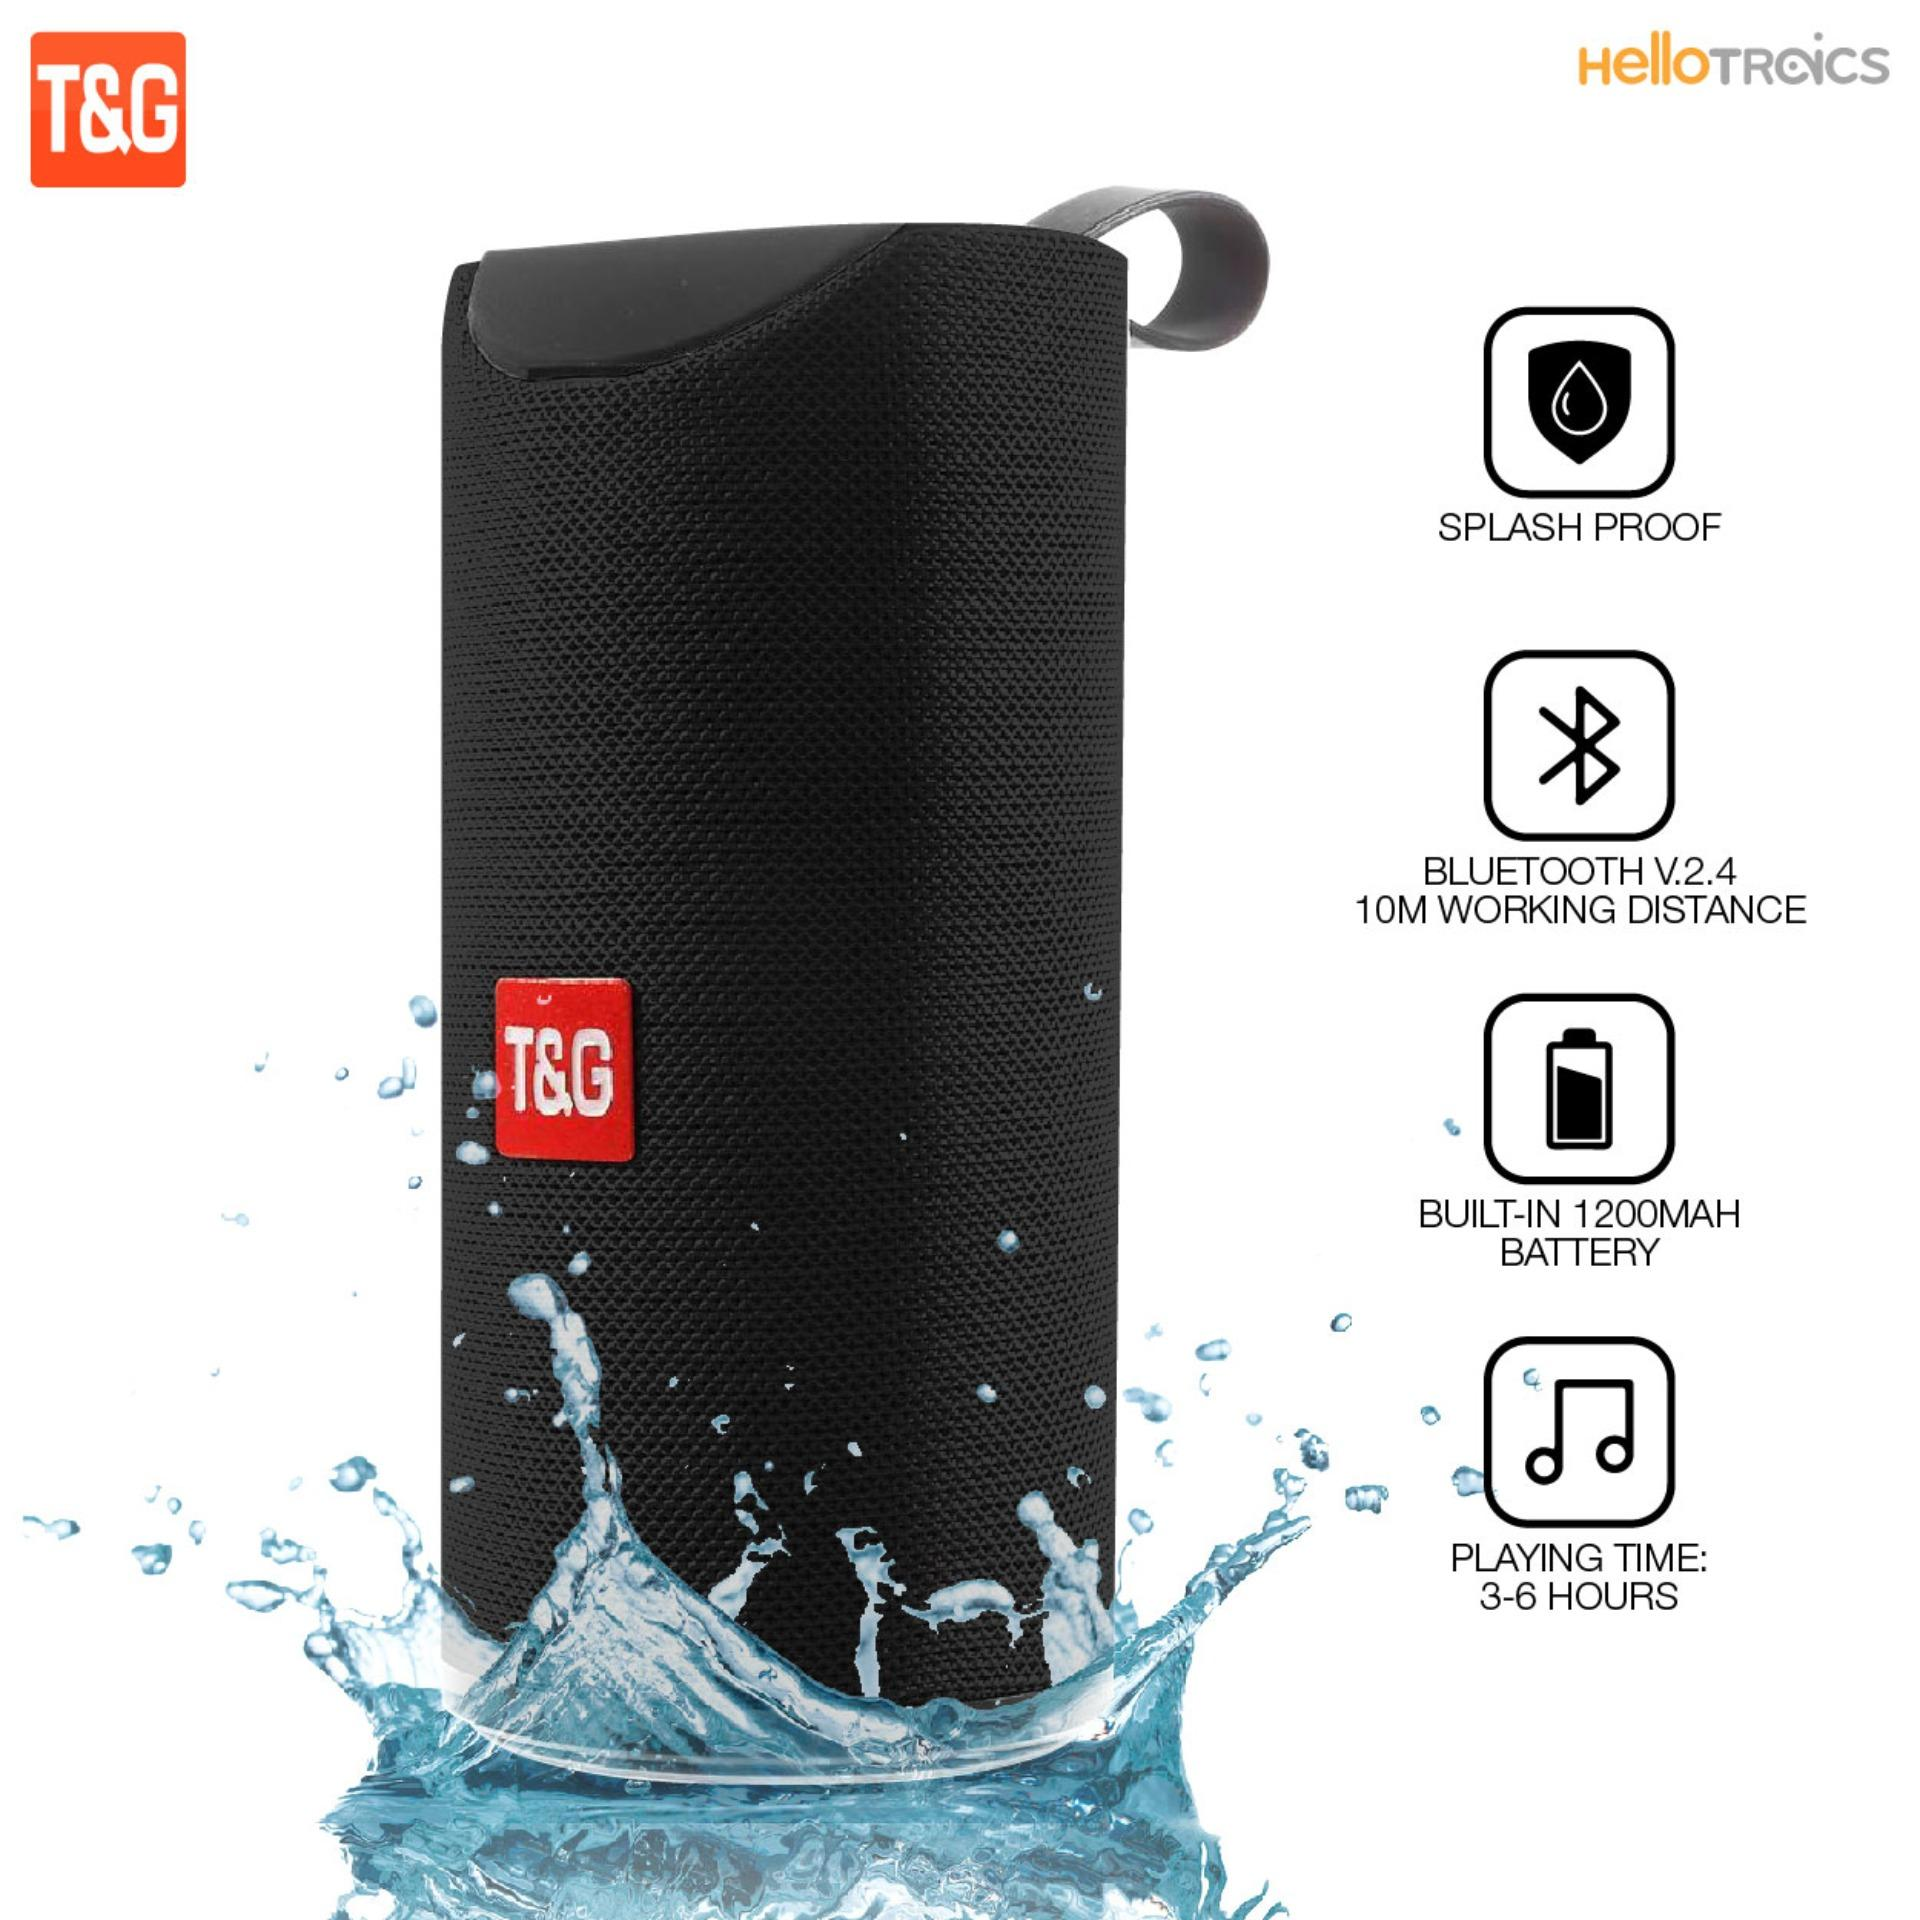 T&G TG113 Super Bass Splash proof Bluetooth Speaker with SD Card Slot and Aux